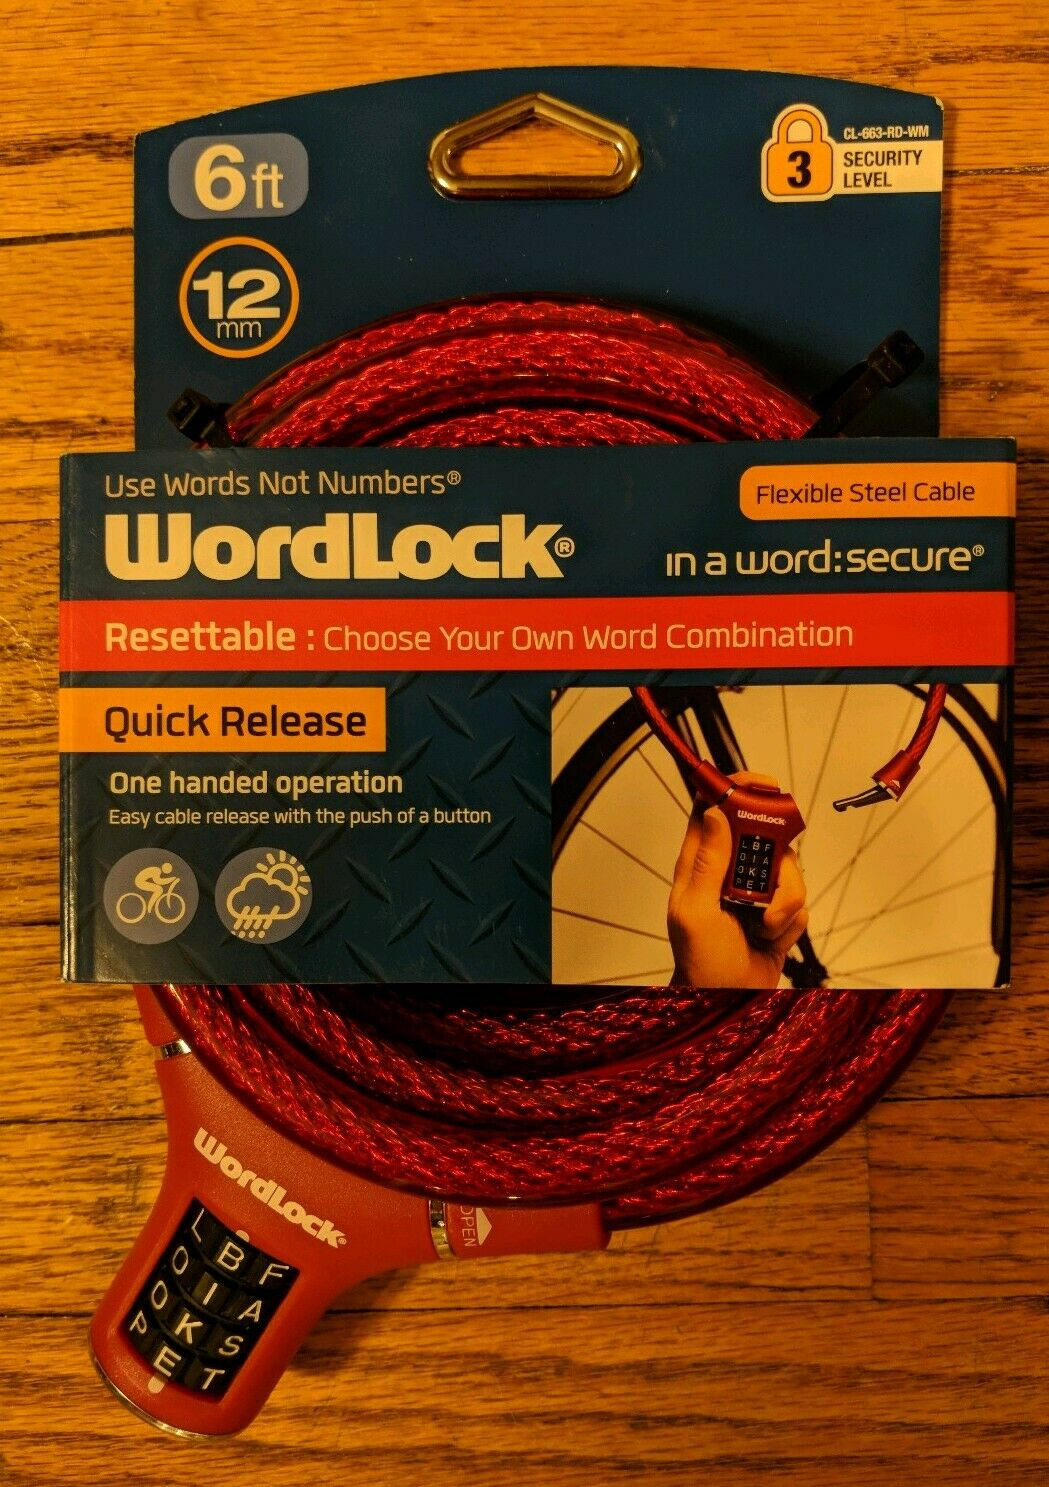 WORDLOCK Secure 6ft Resettable Combination Bike Chain Lock 10,000 Codes RED//BLK